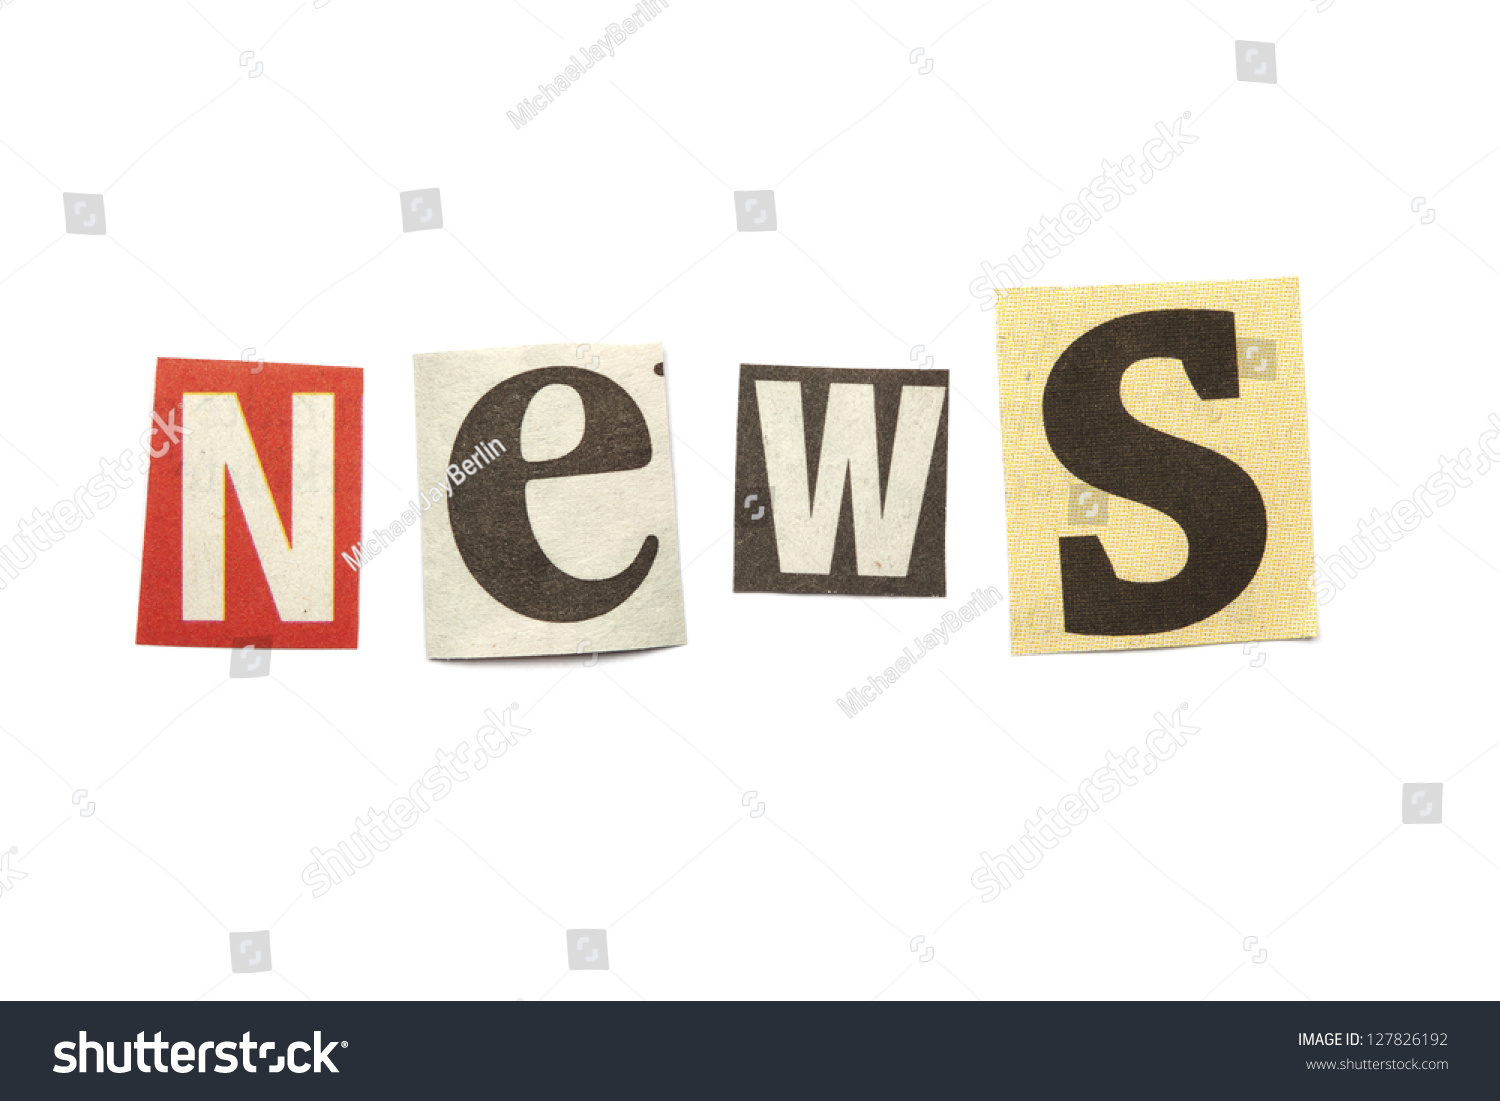 set of letters cut out from newspaper in blackmail style saying news